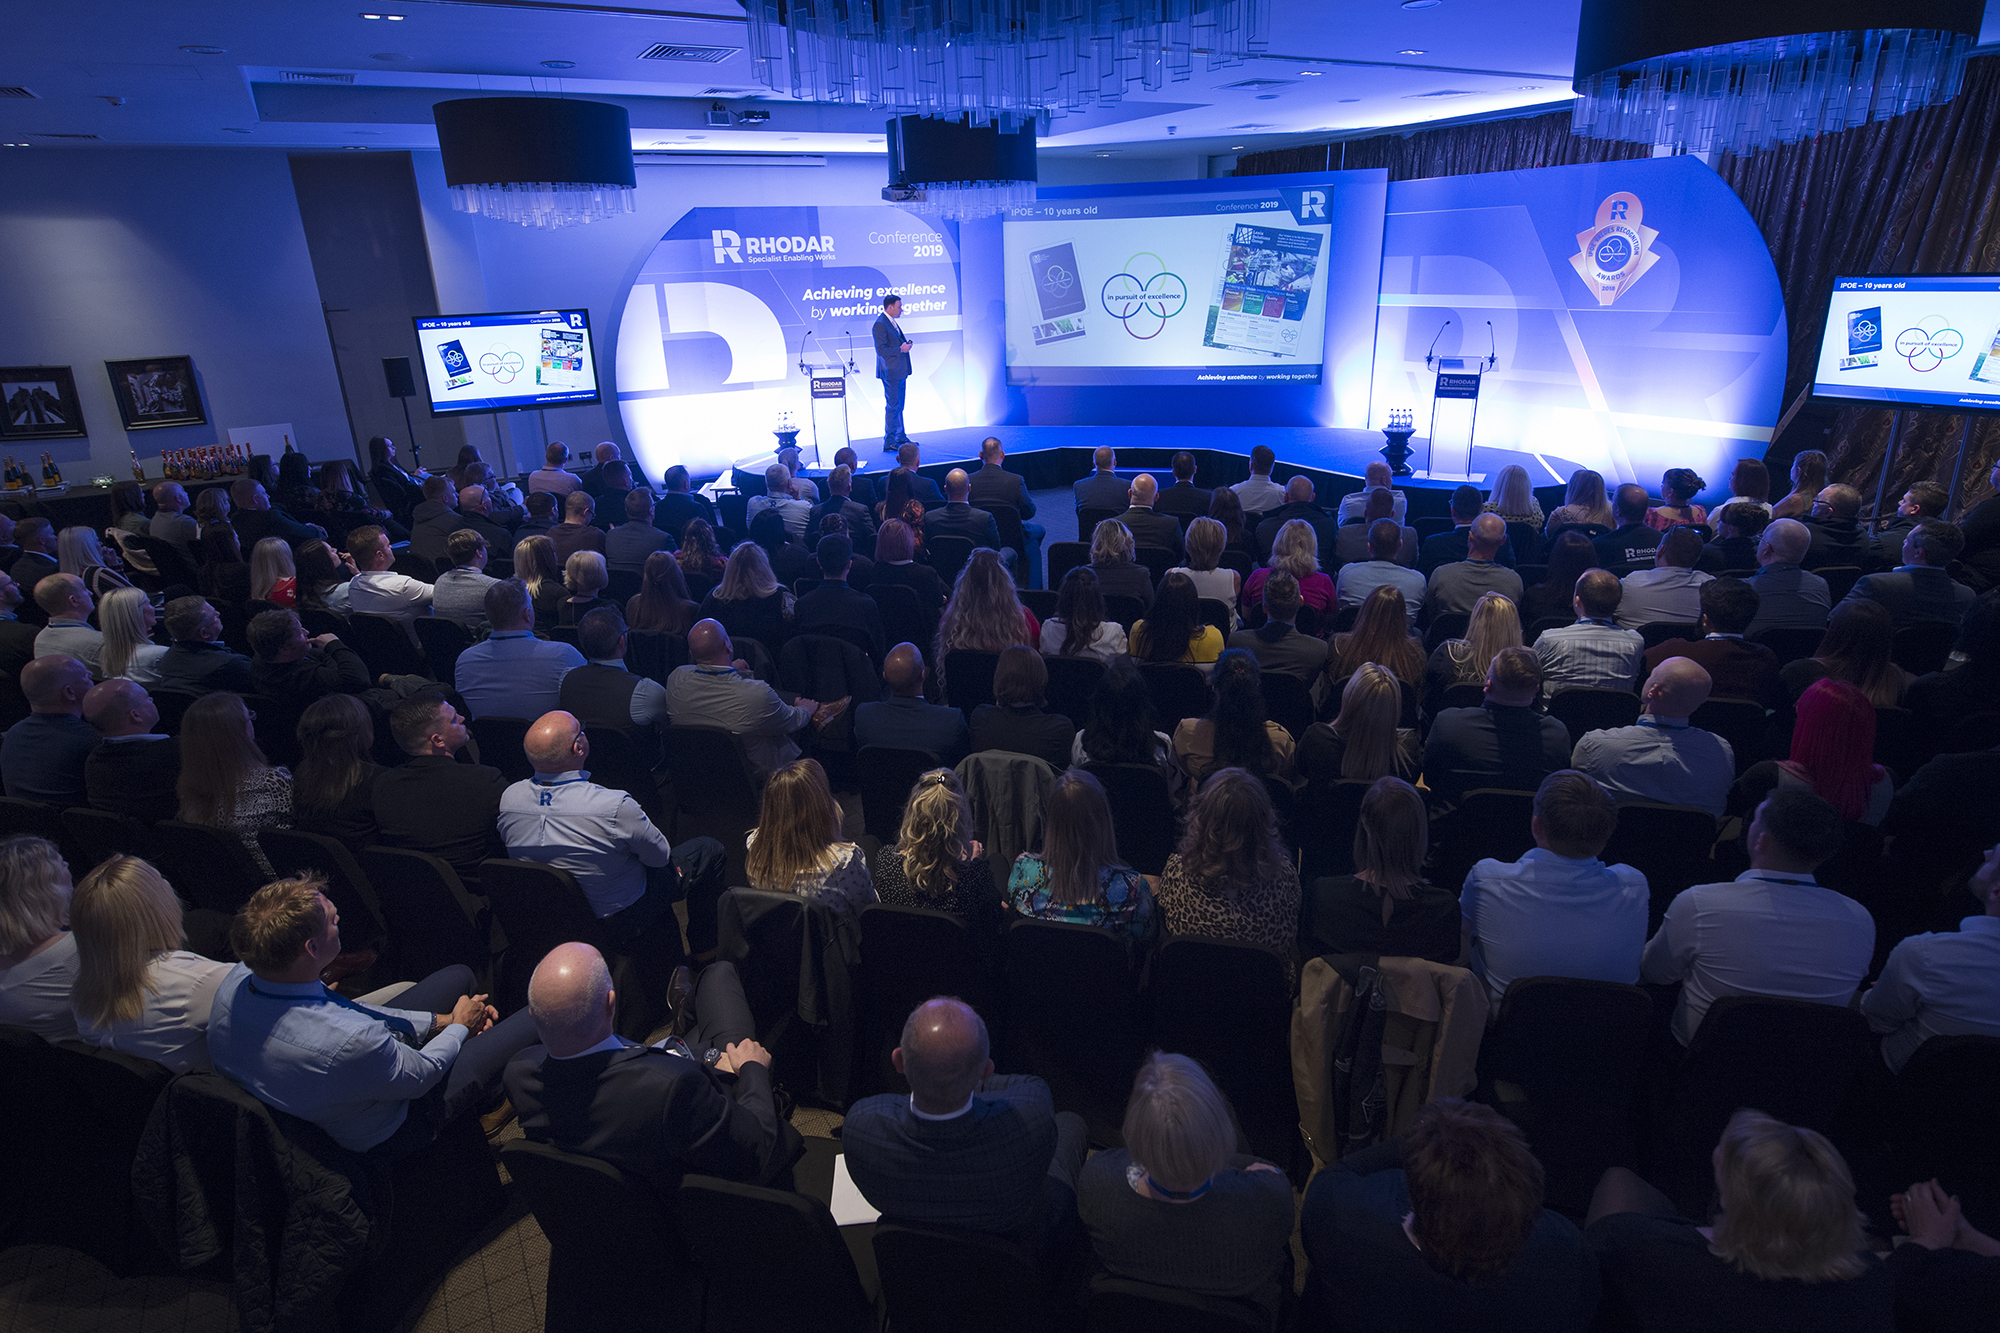 Rhodar sets out new vision and values at annual conference